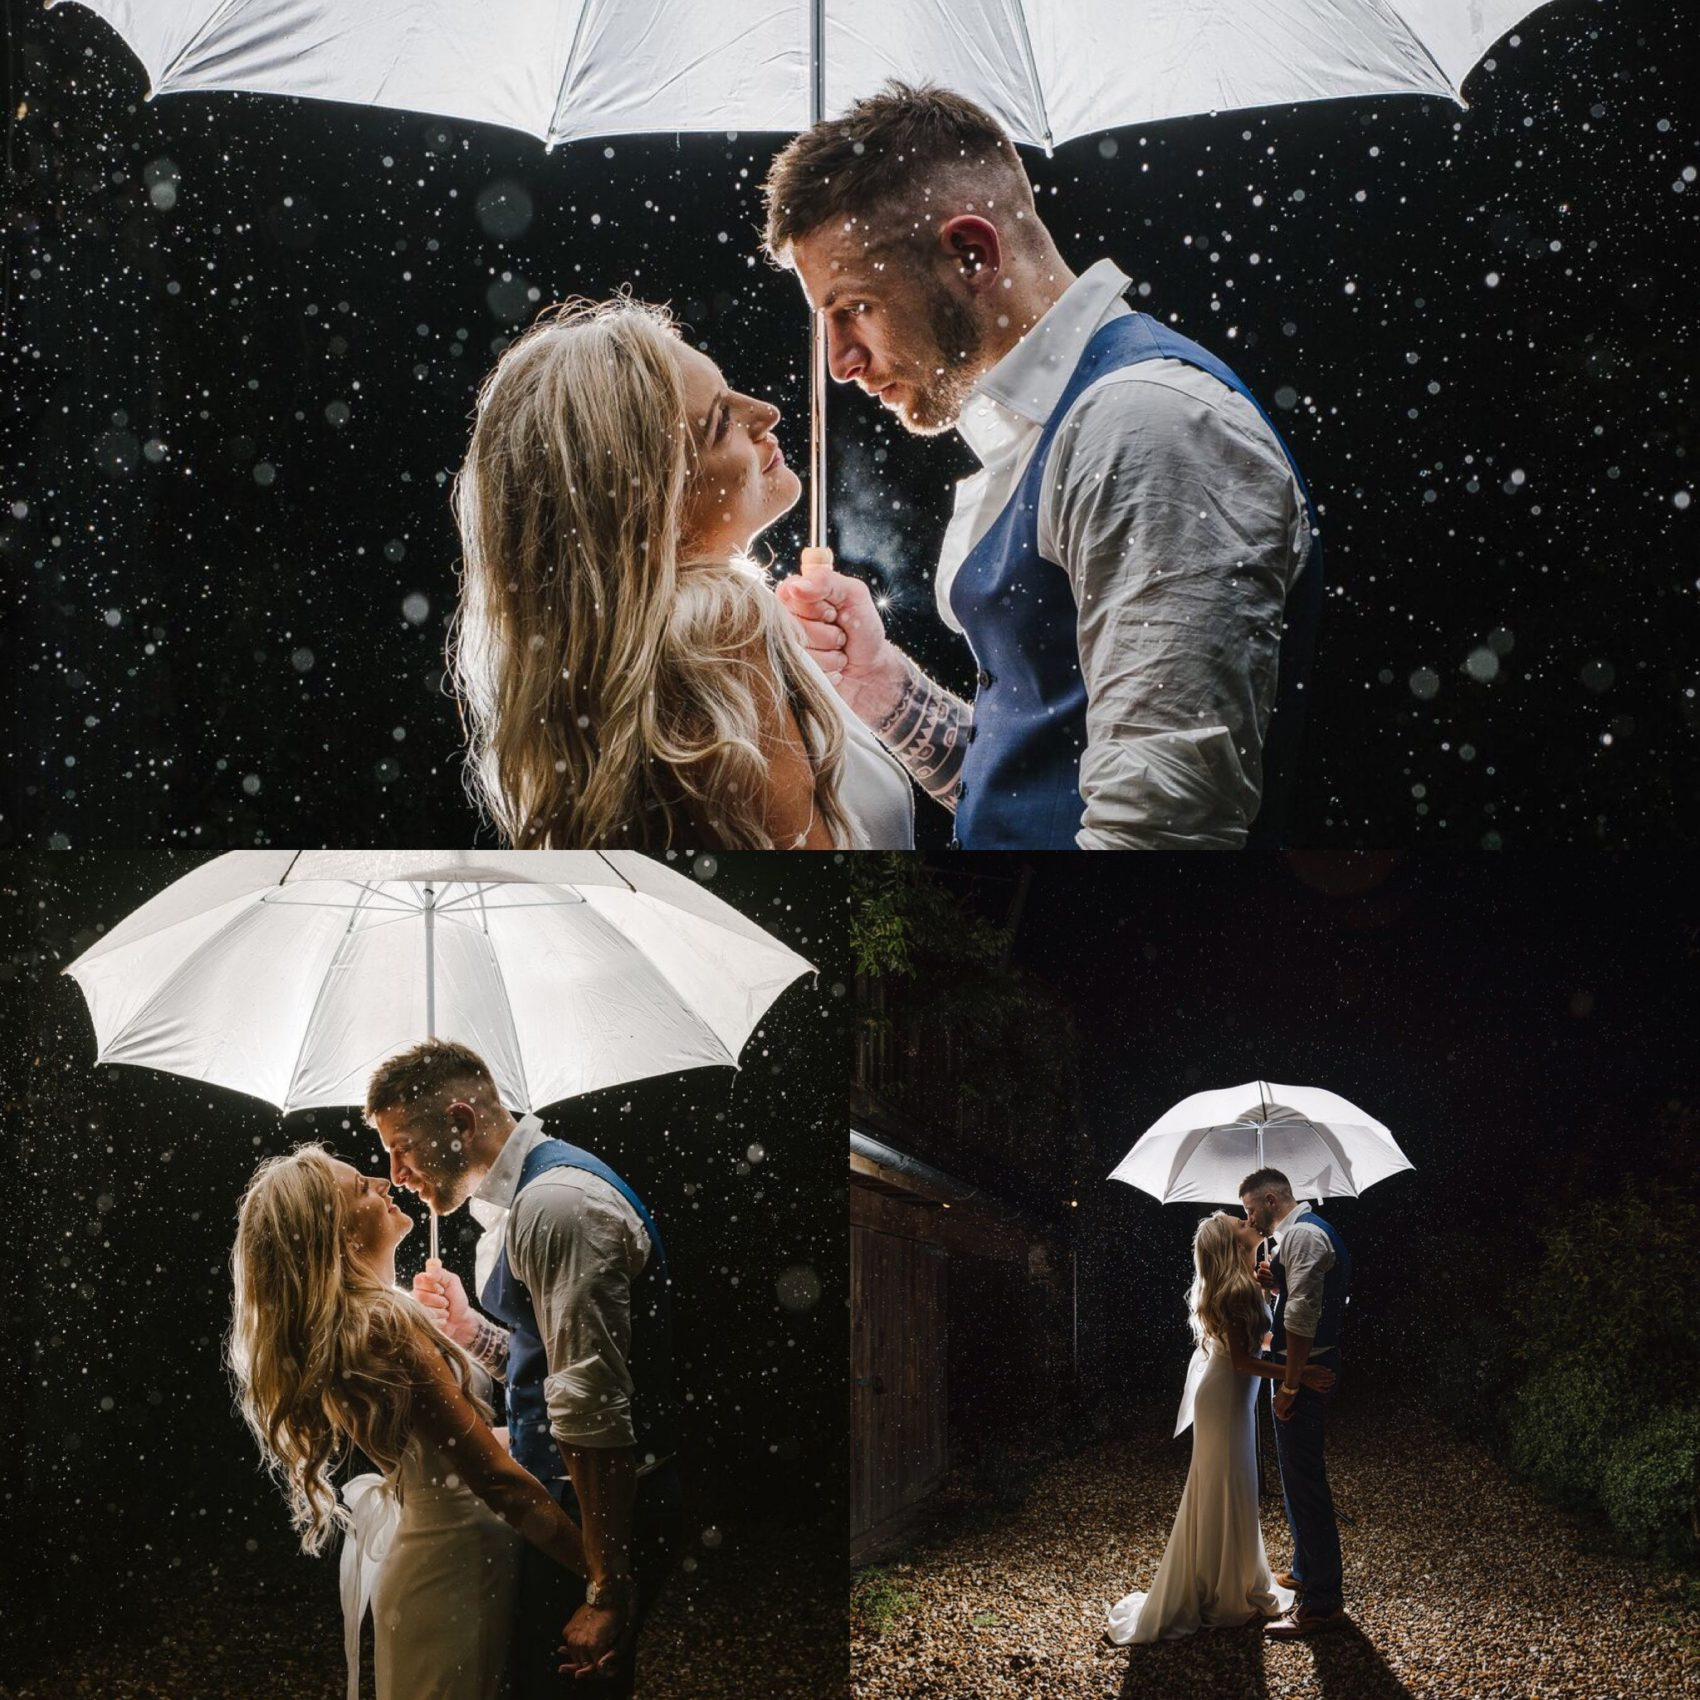 Rainy day, rain, umbrella, lighting, bride & groom, love, bokeh, wedding, lower grenofen, ever after, couple, magical, white, dress, suit,